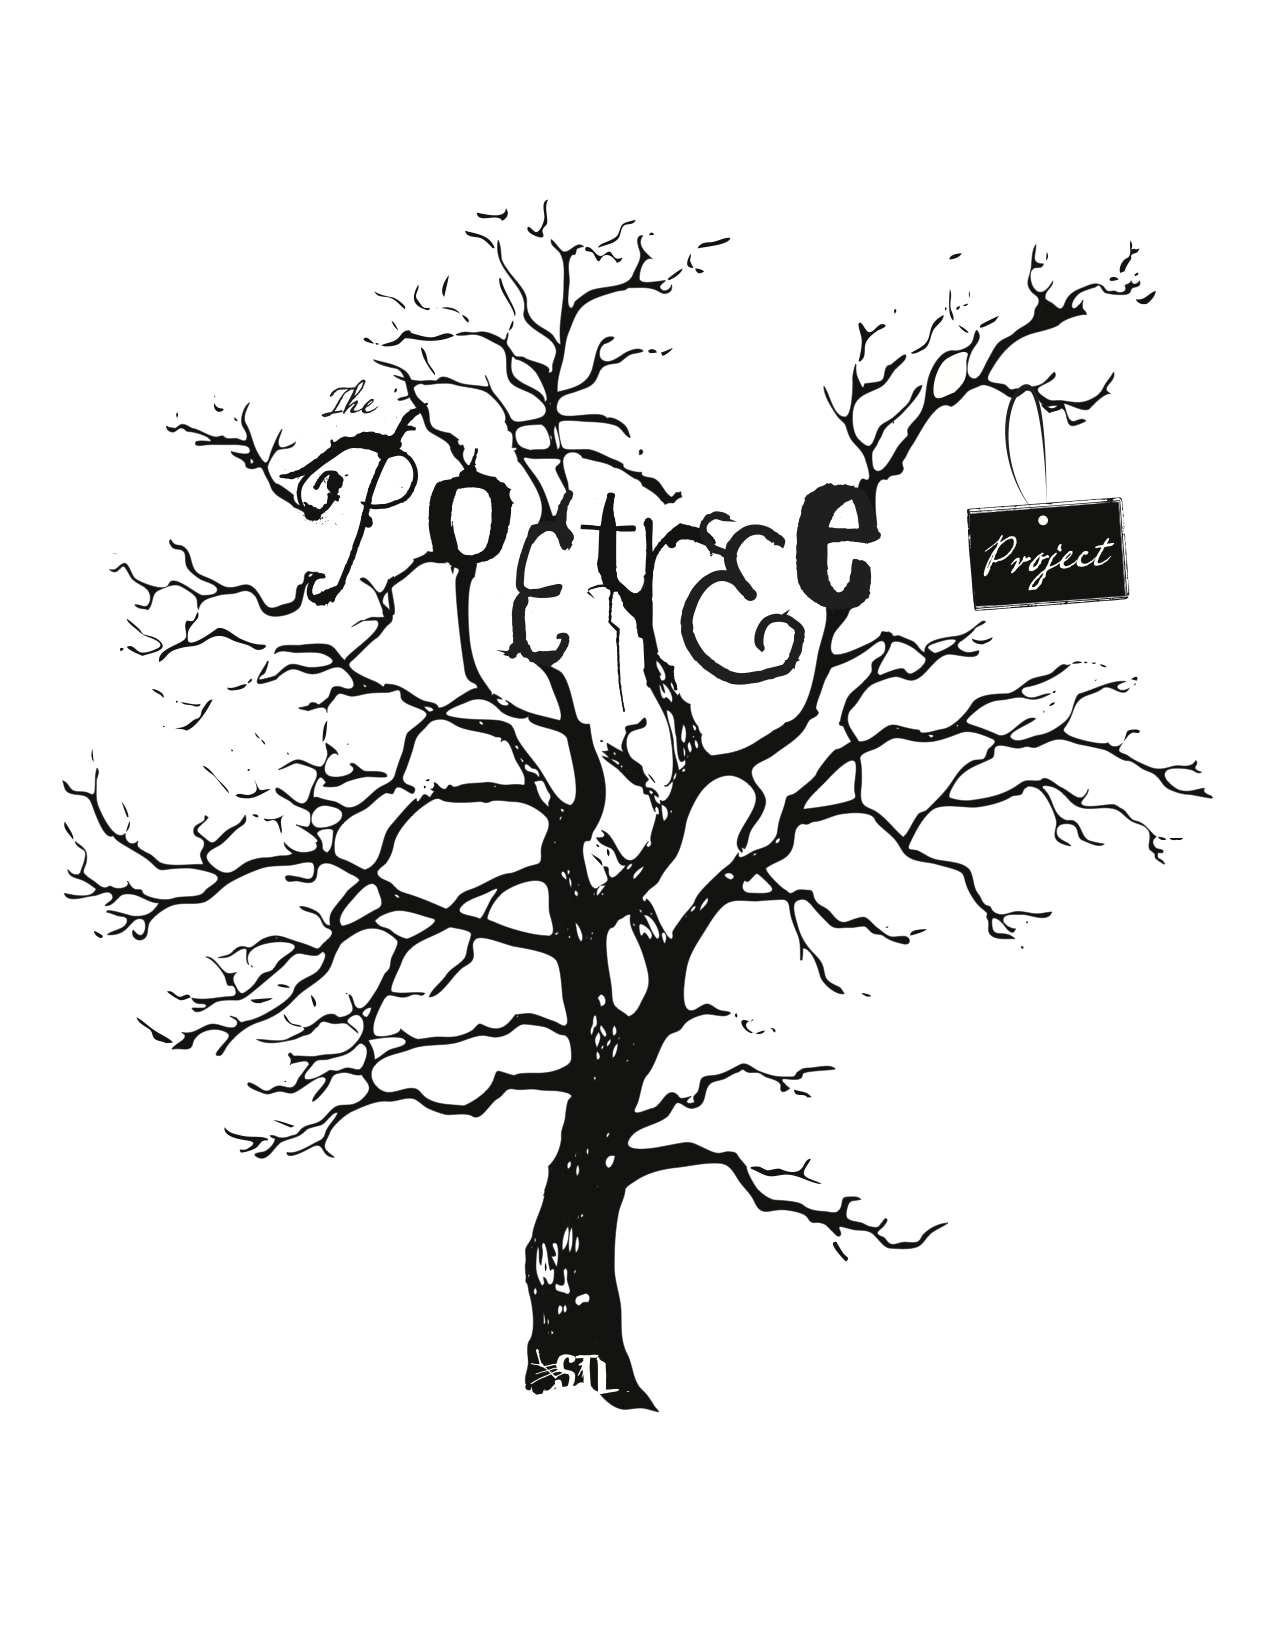 1275x1651 The Poetree Project